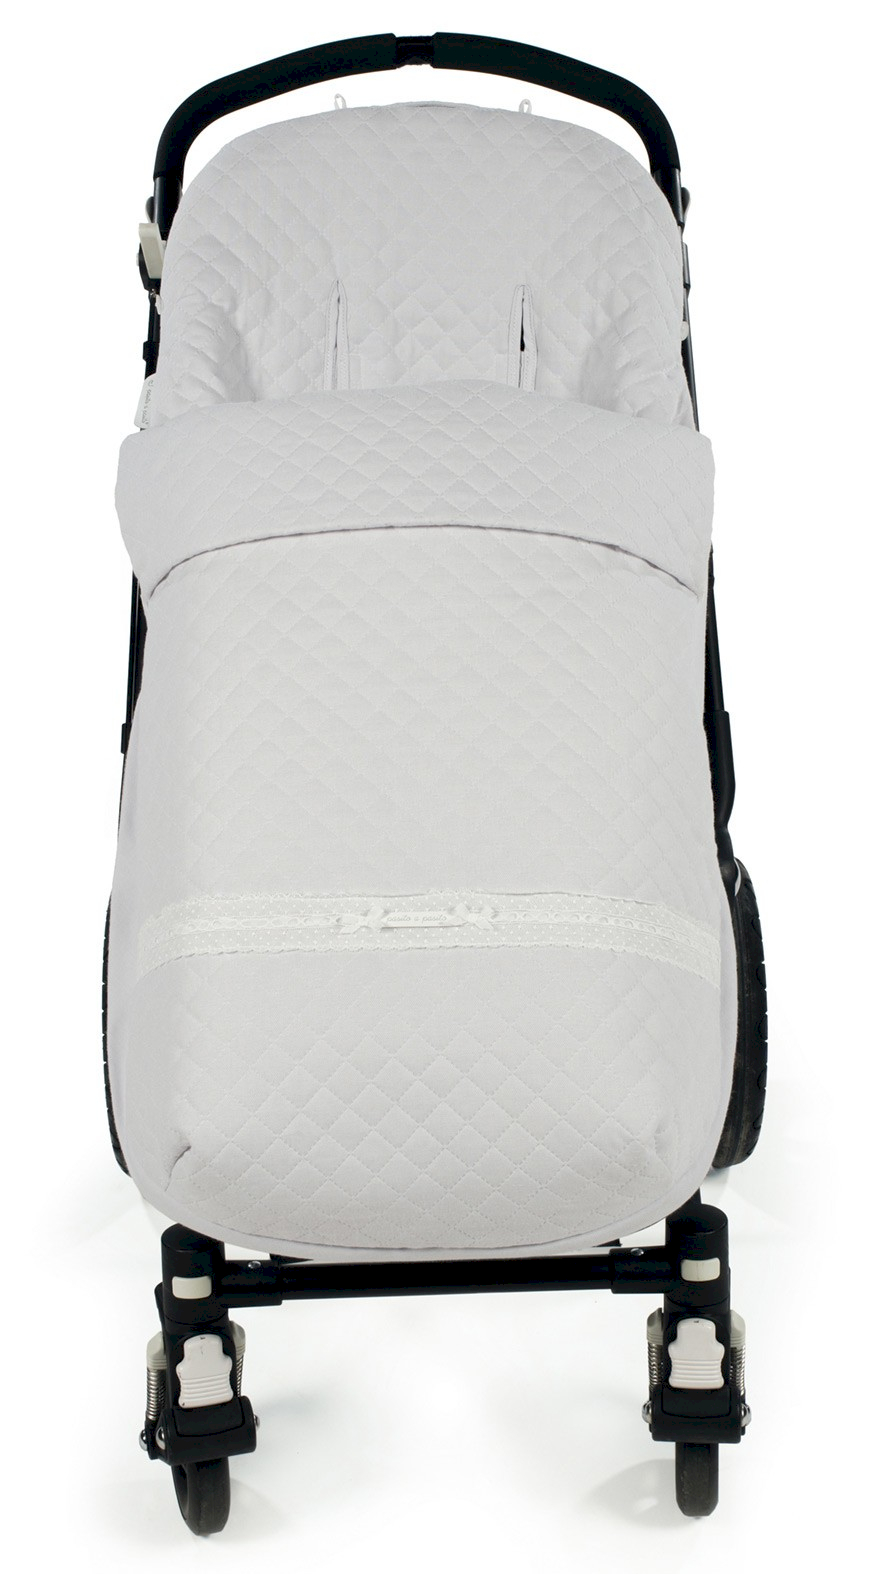 Fußsack für Kinderwagen Oxford Grey